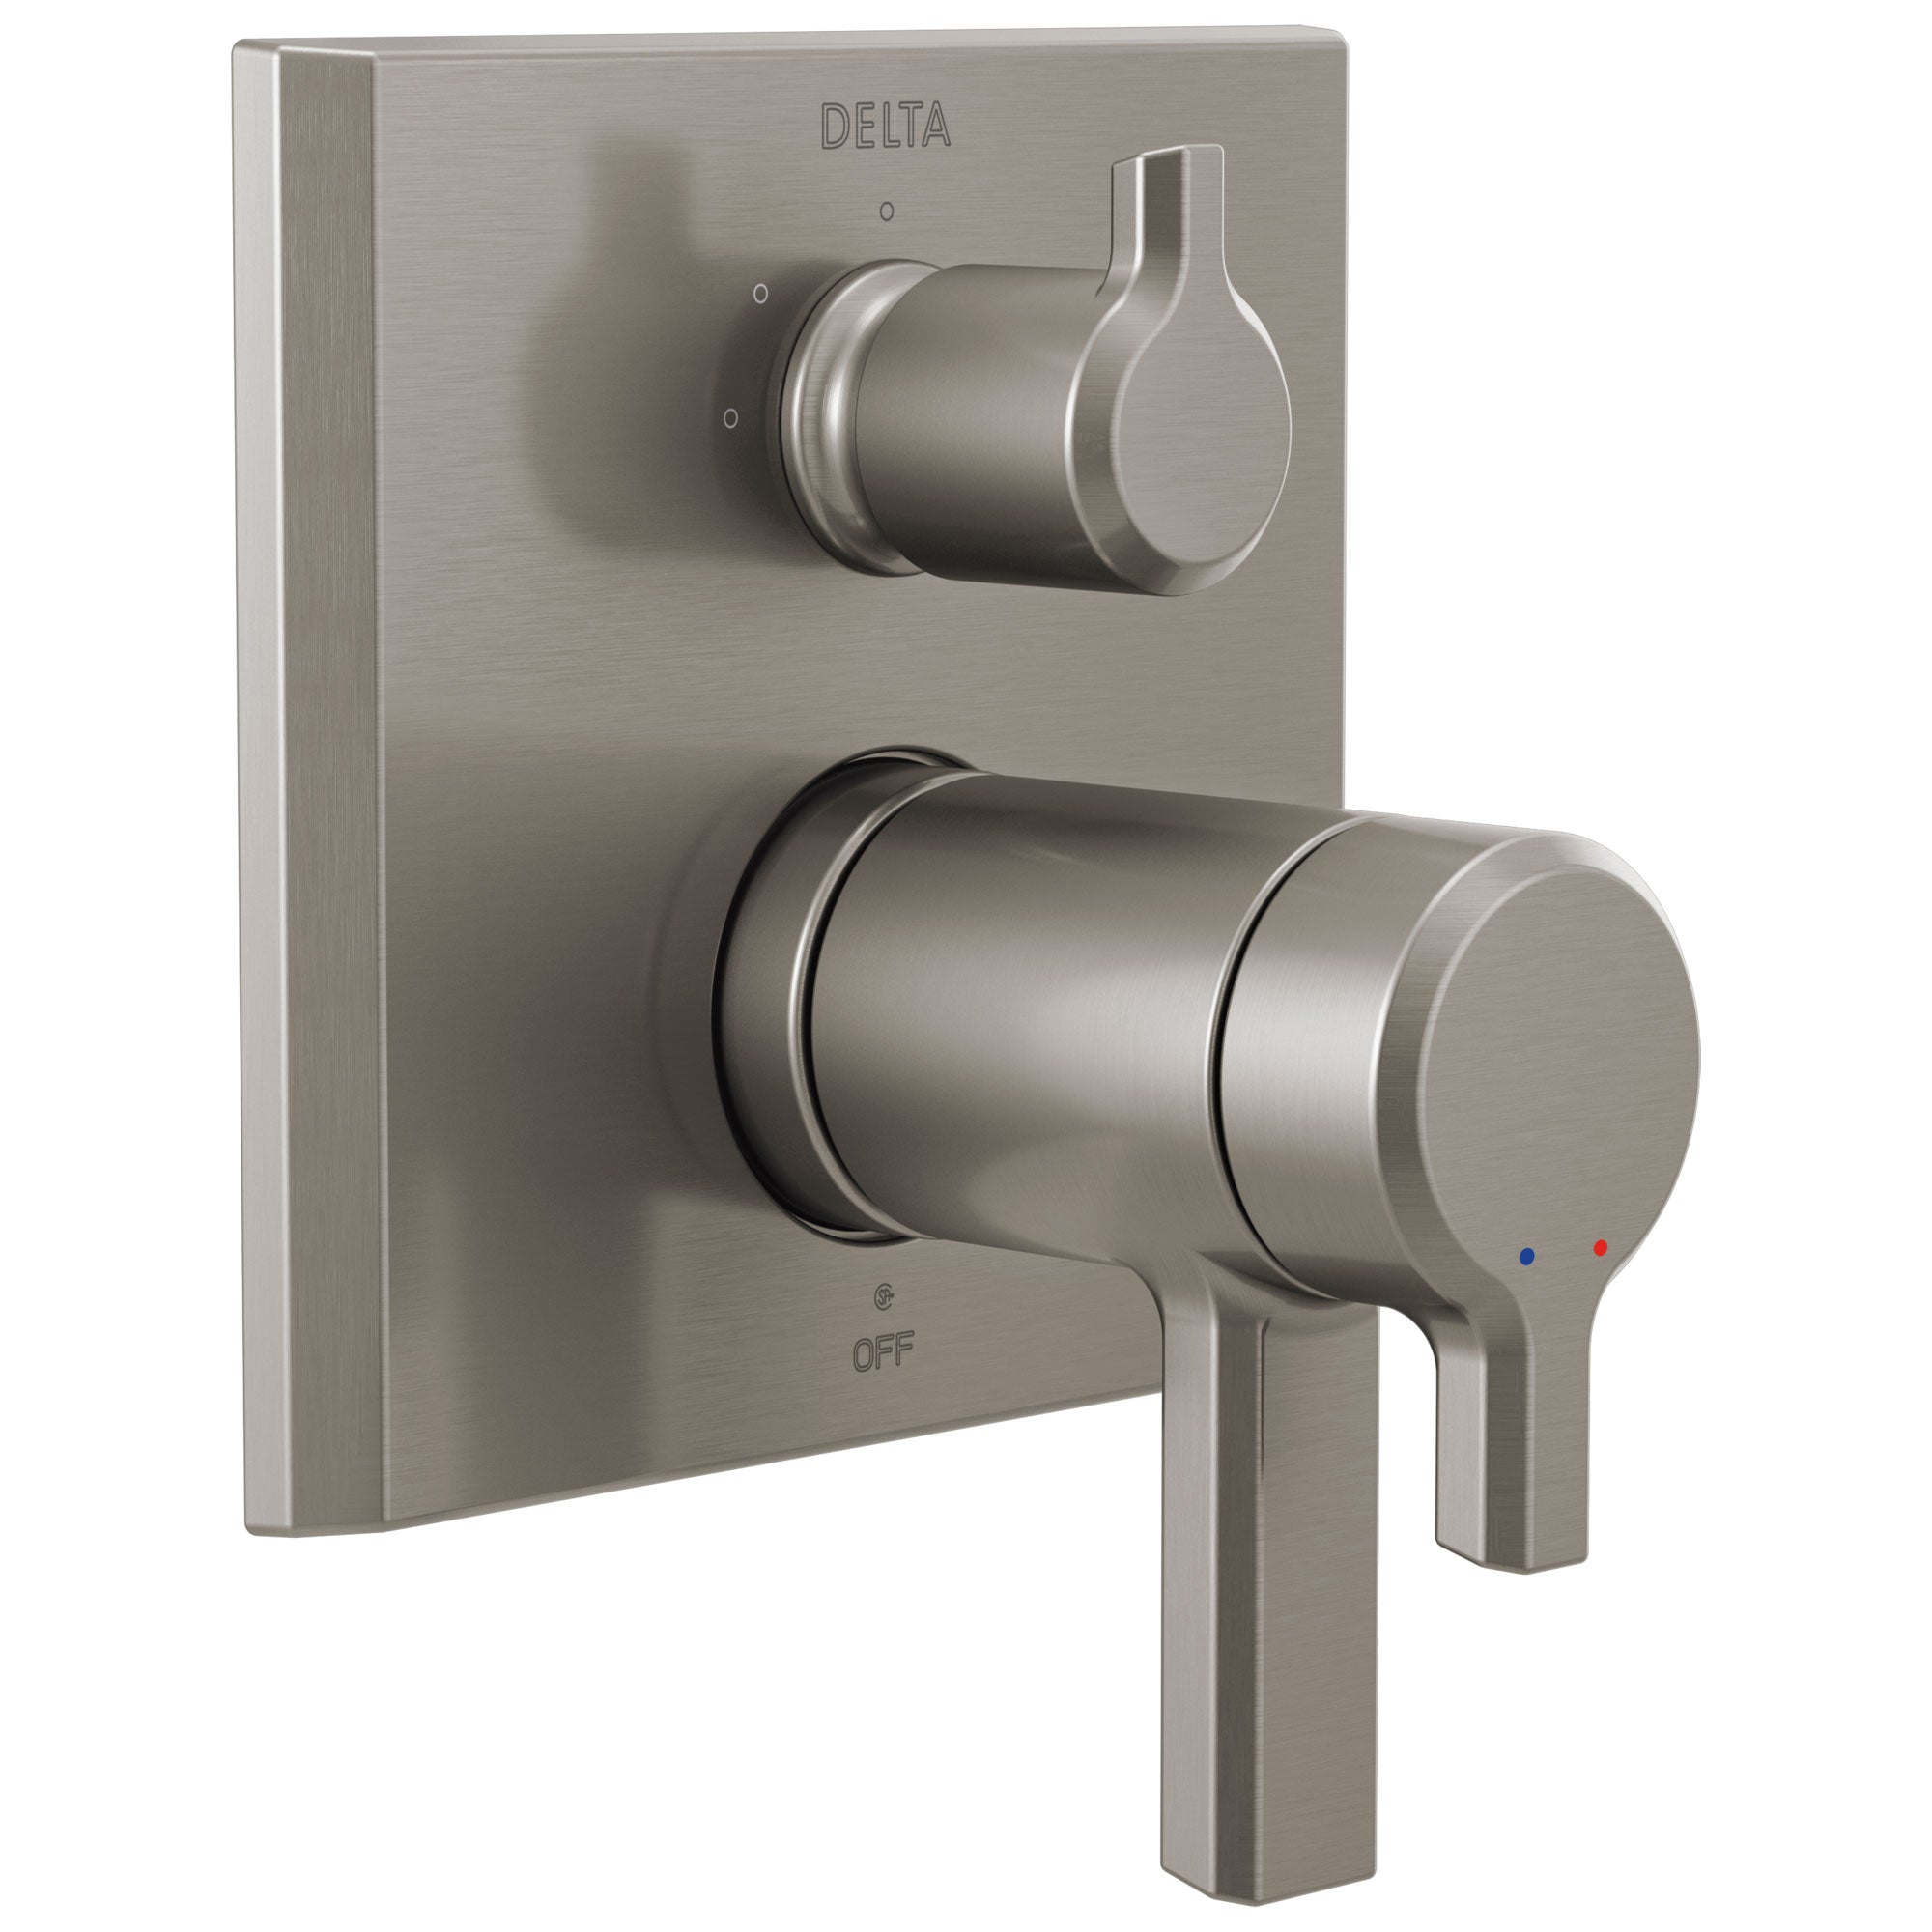 Delta Pivotal Modern Stainless Steel Finish Thermostatic Shower System Control with 3-Setting Integrated Diverter Includes Valve and Handles D3088V